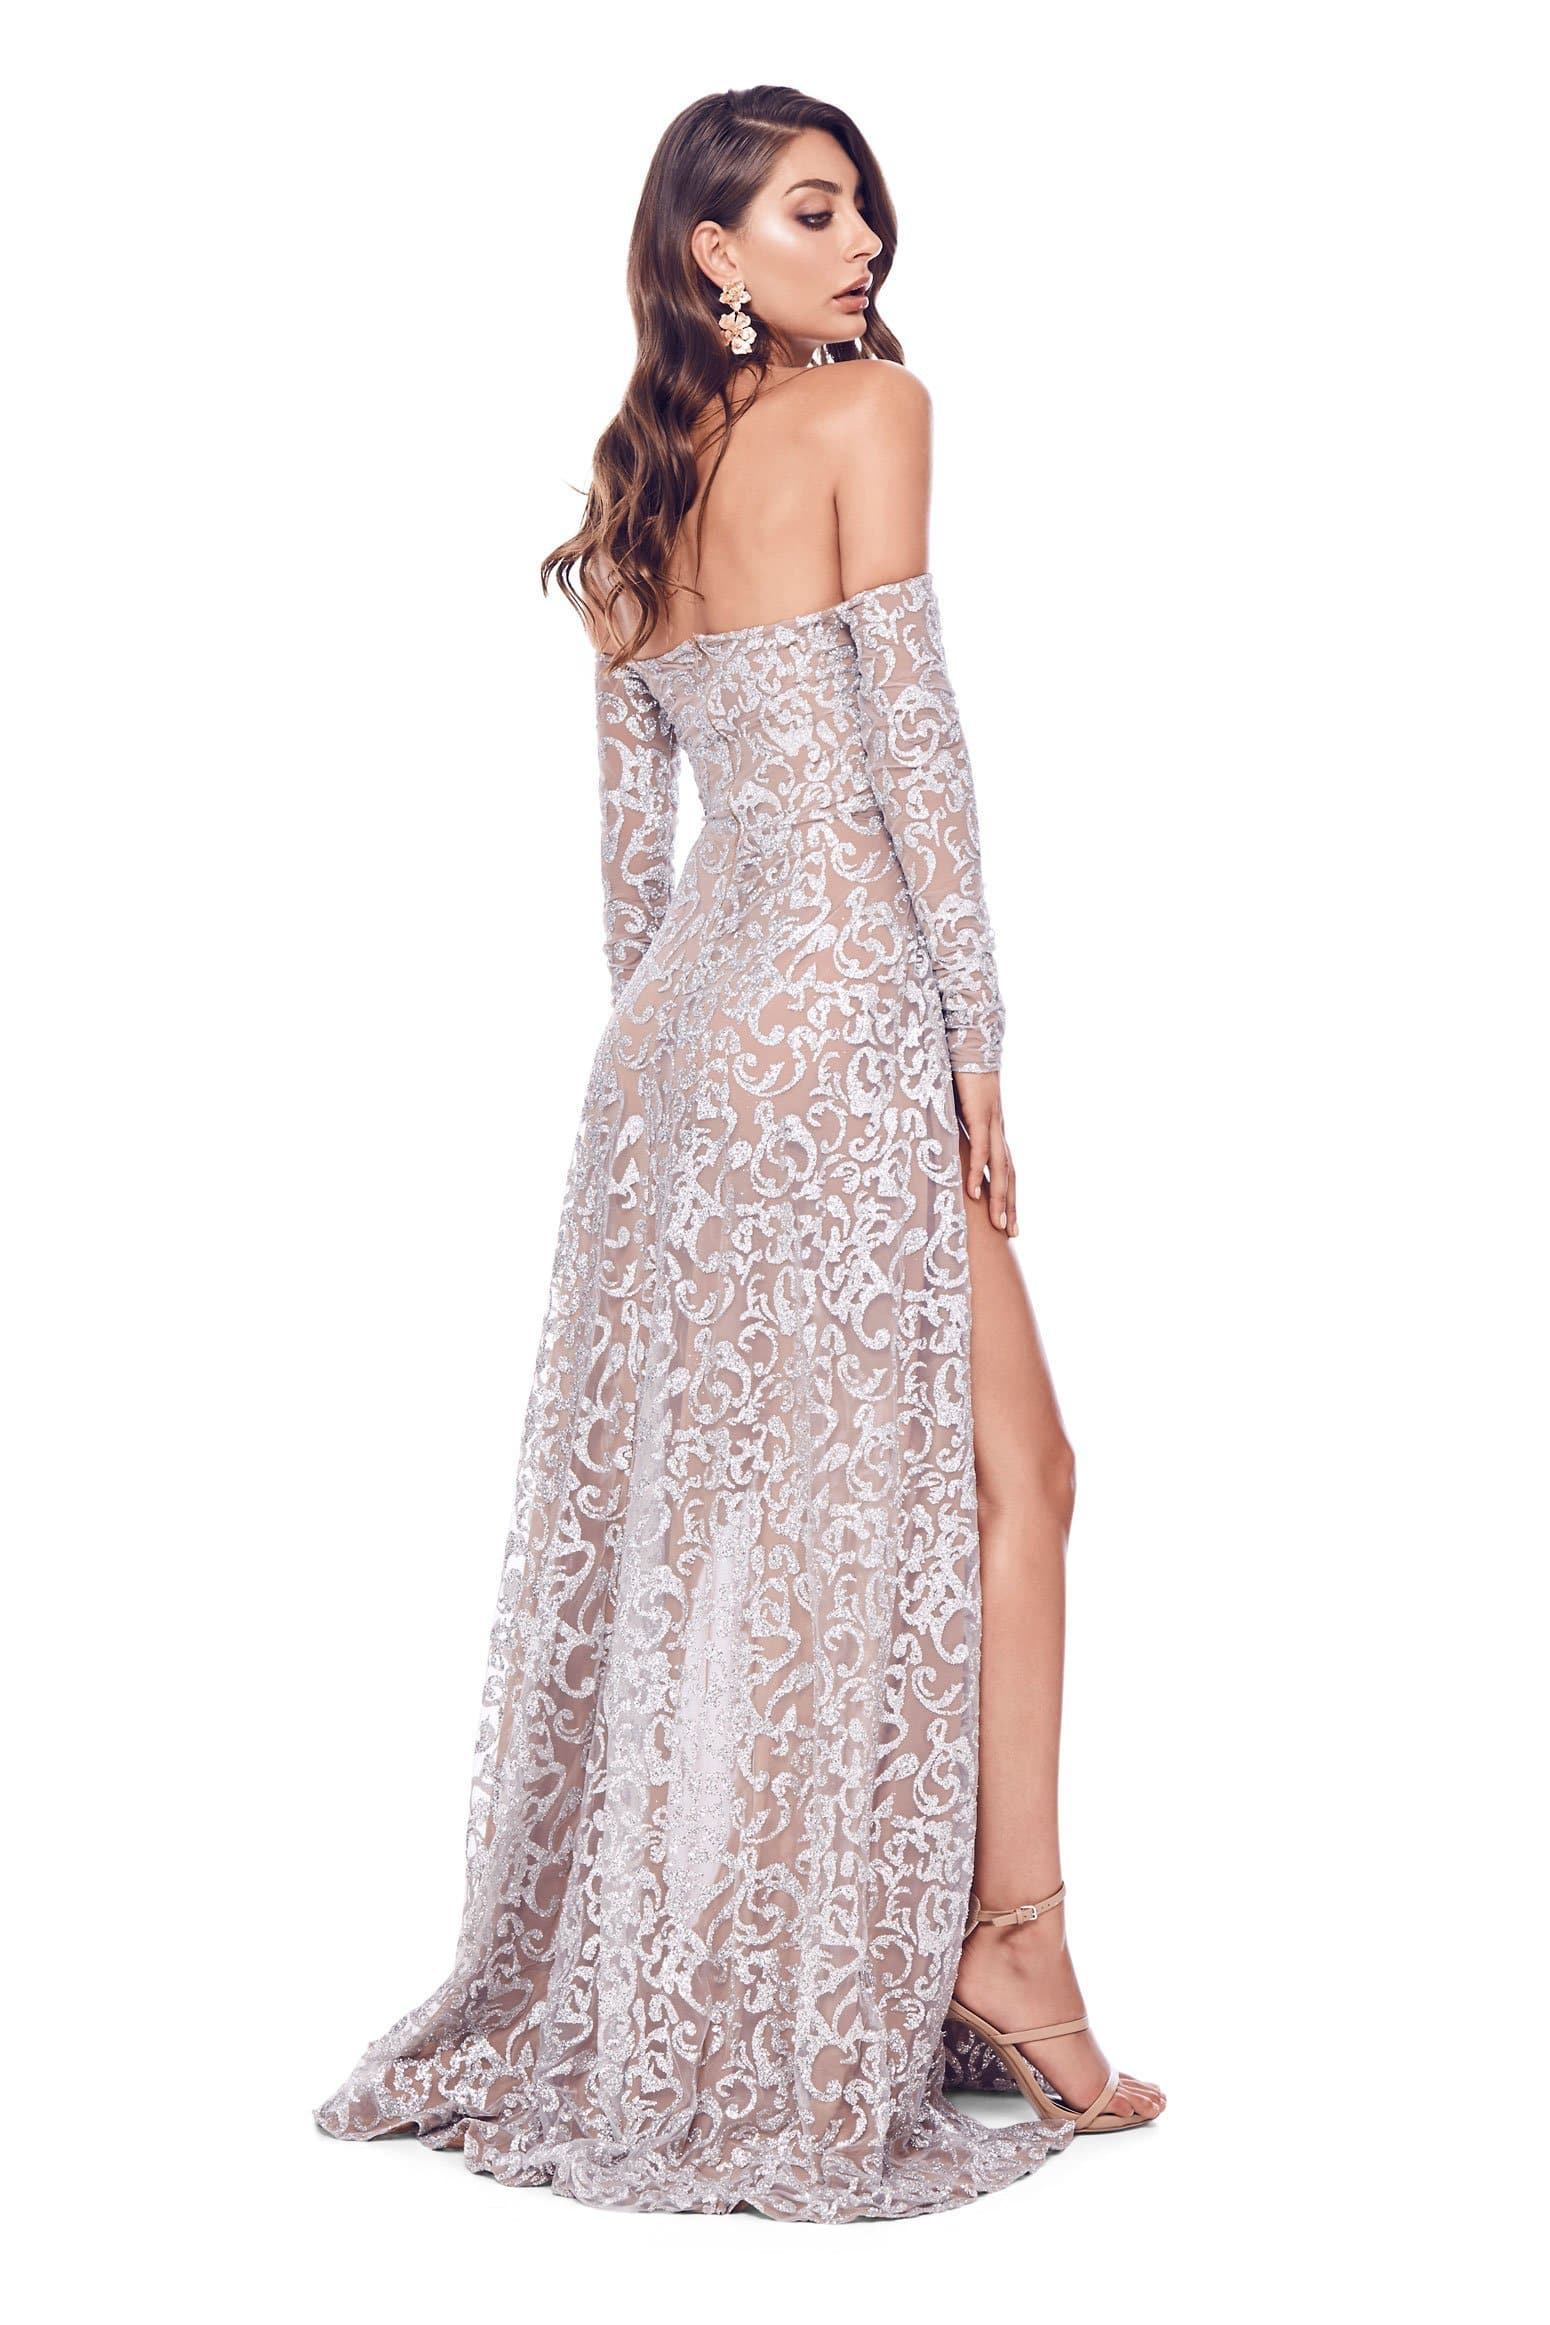 ed7ae19ccf09 Long Silver Sequin Dress - ShopStyle